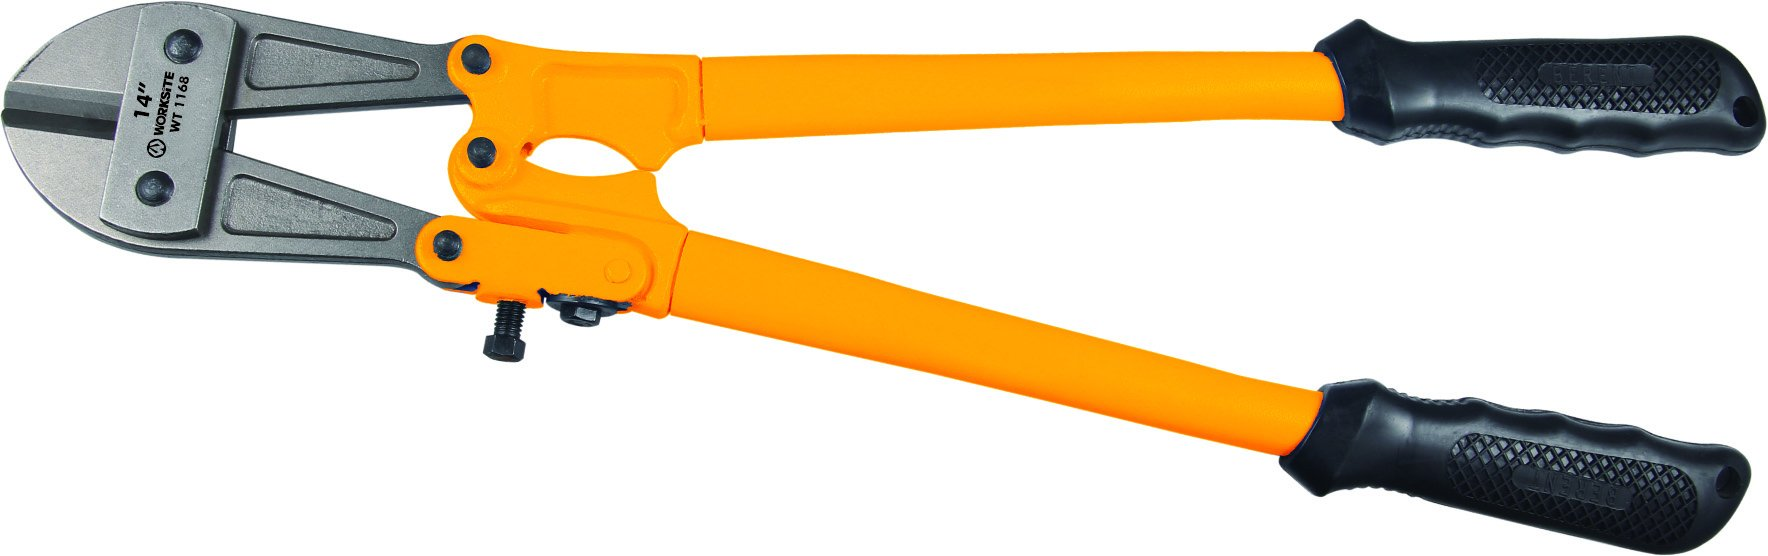 Altocraft USA WT1169 Worksite Heavy Duty Bolt Cutters, 18''